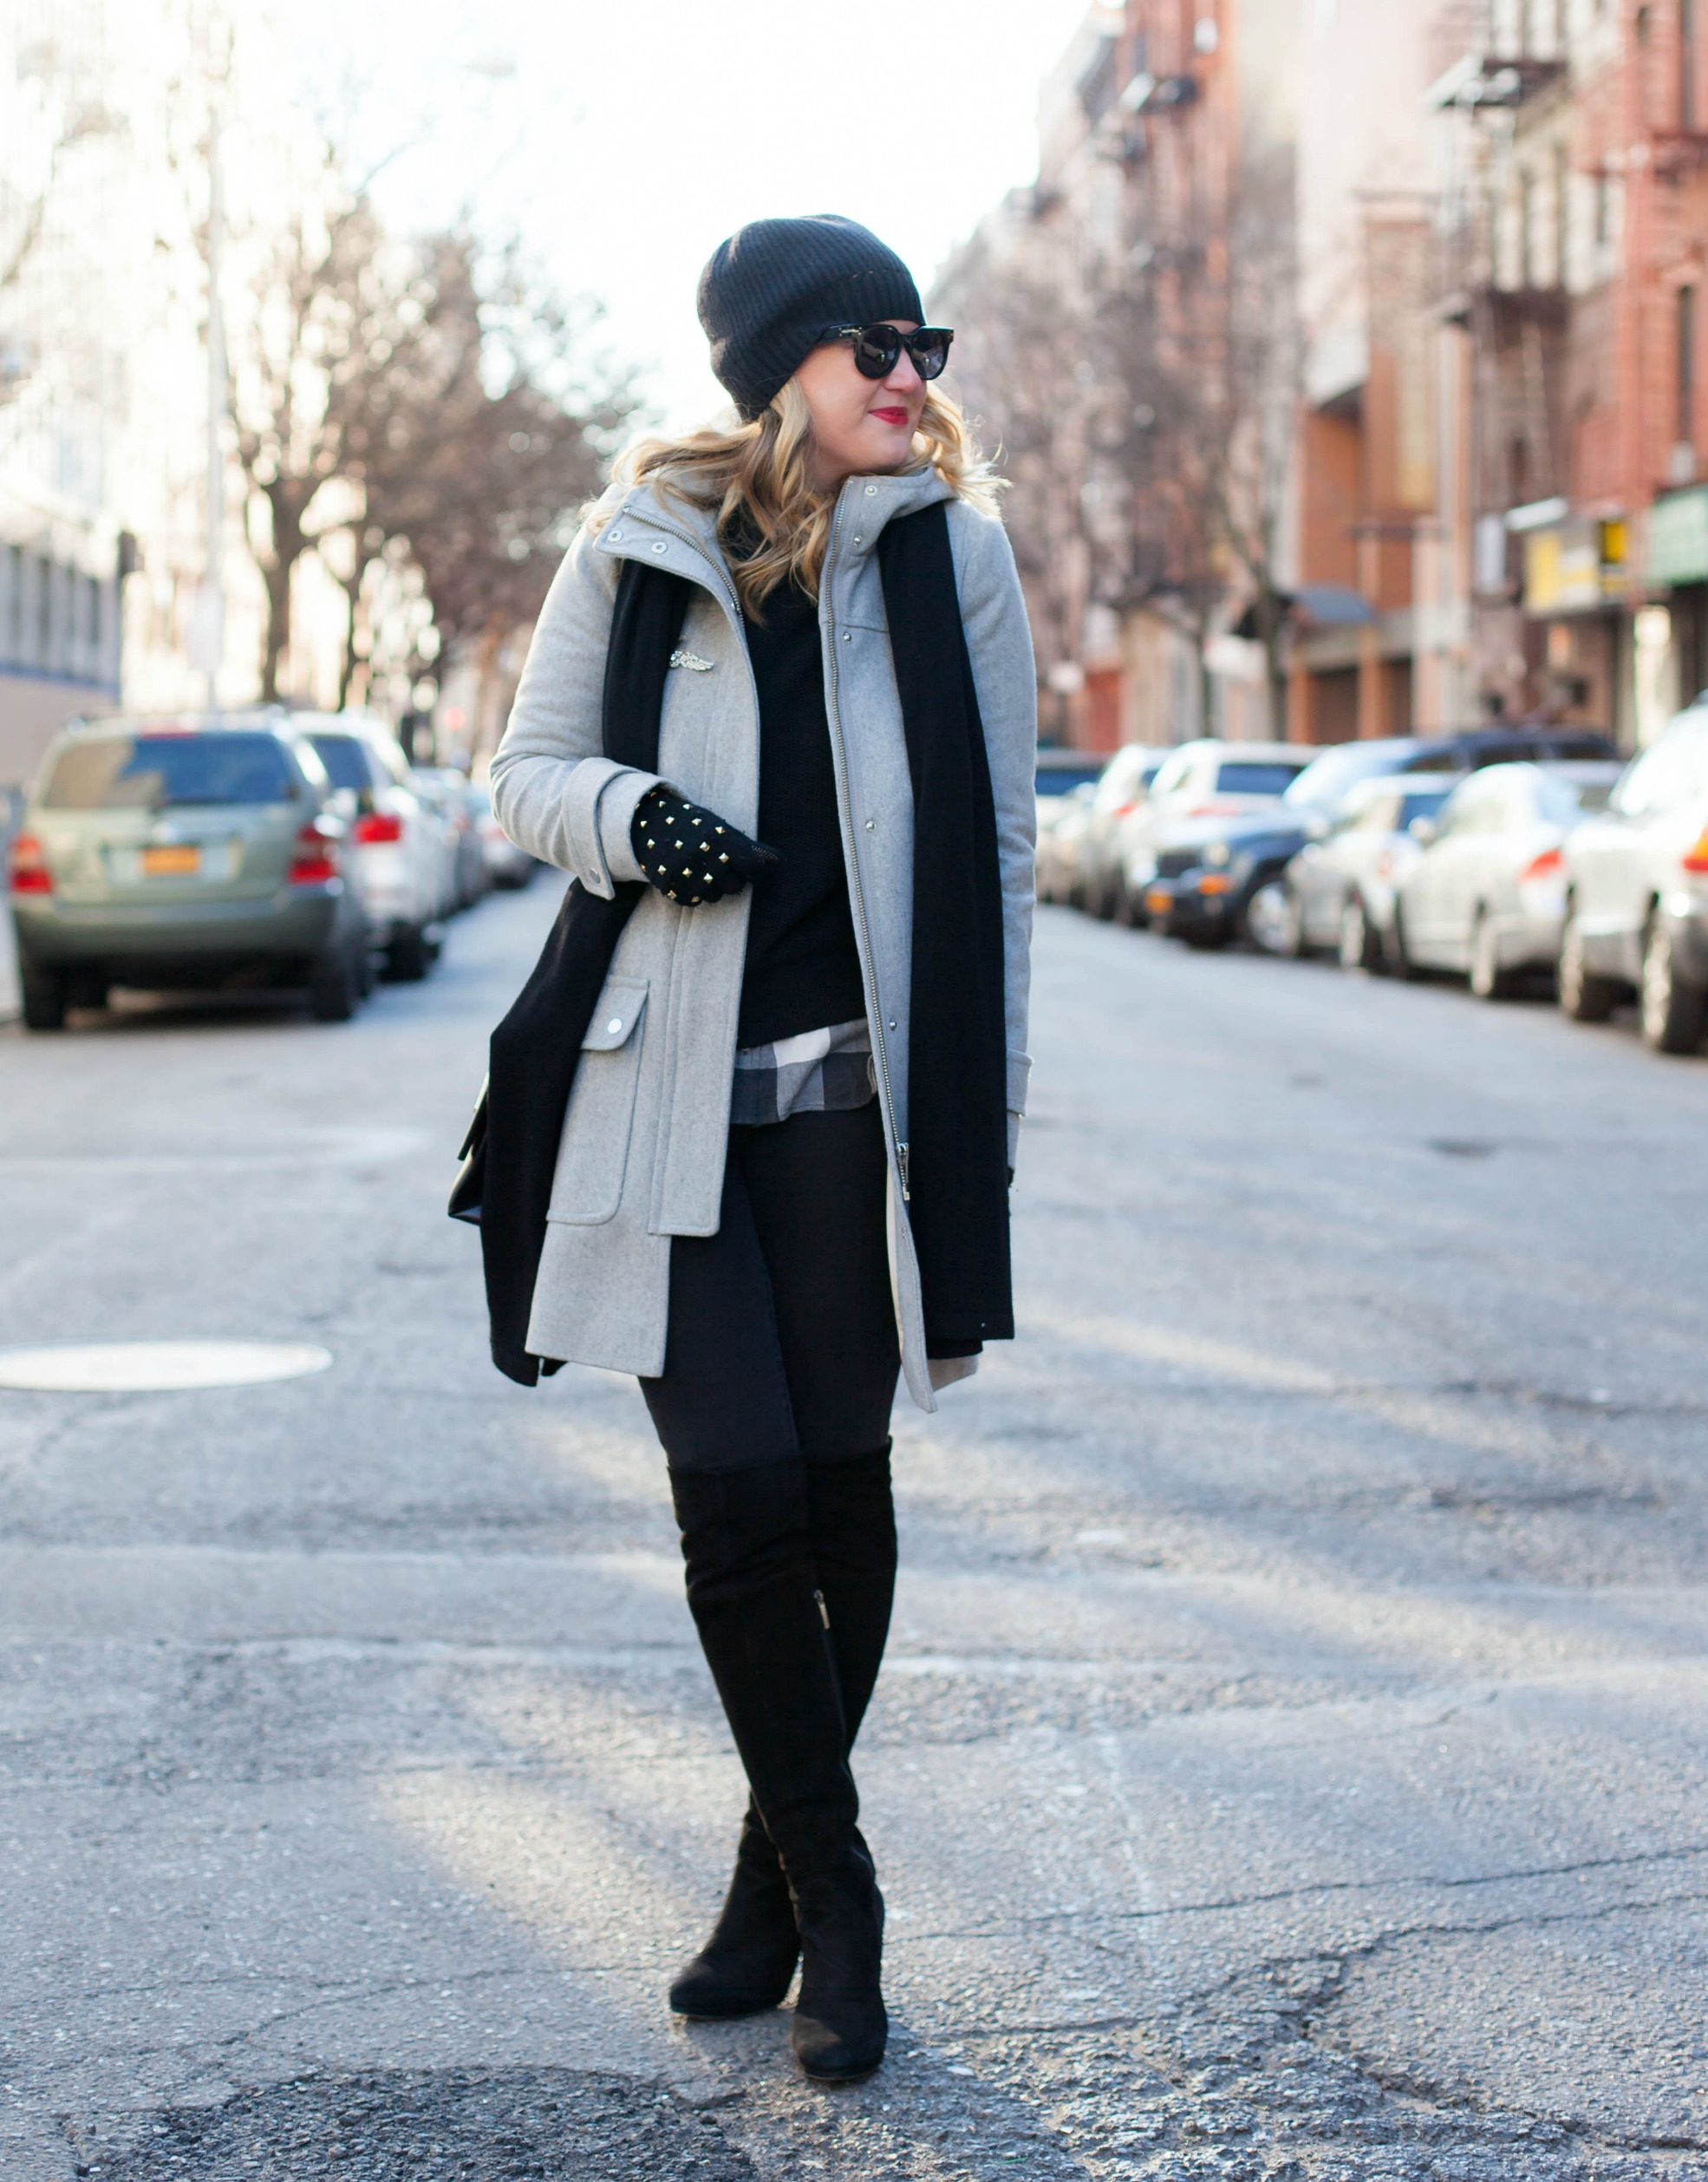 Gray and Black Layers